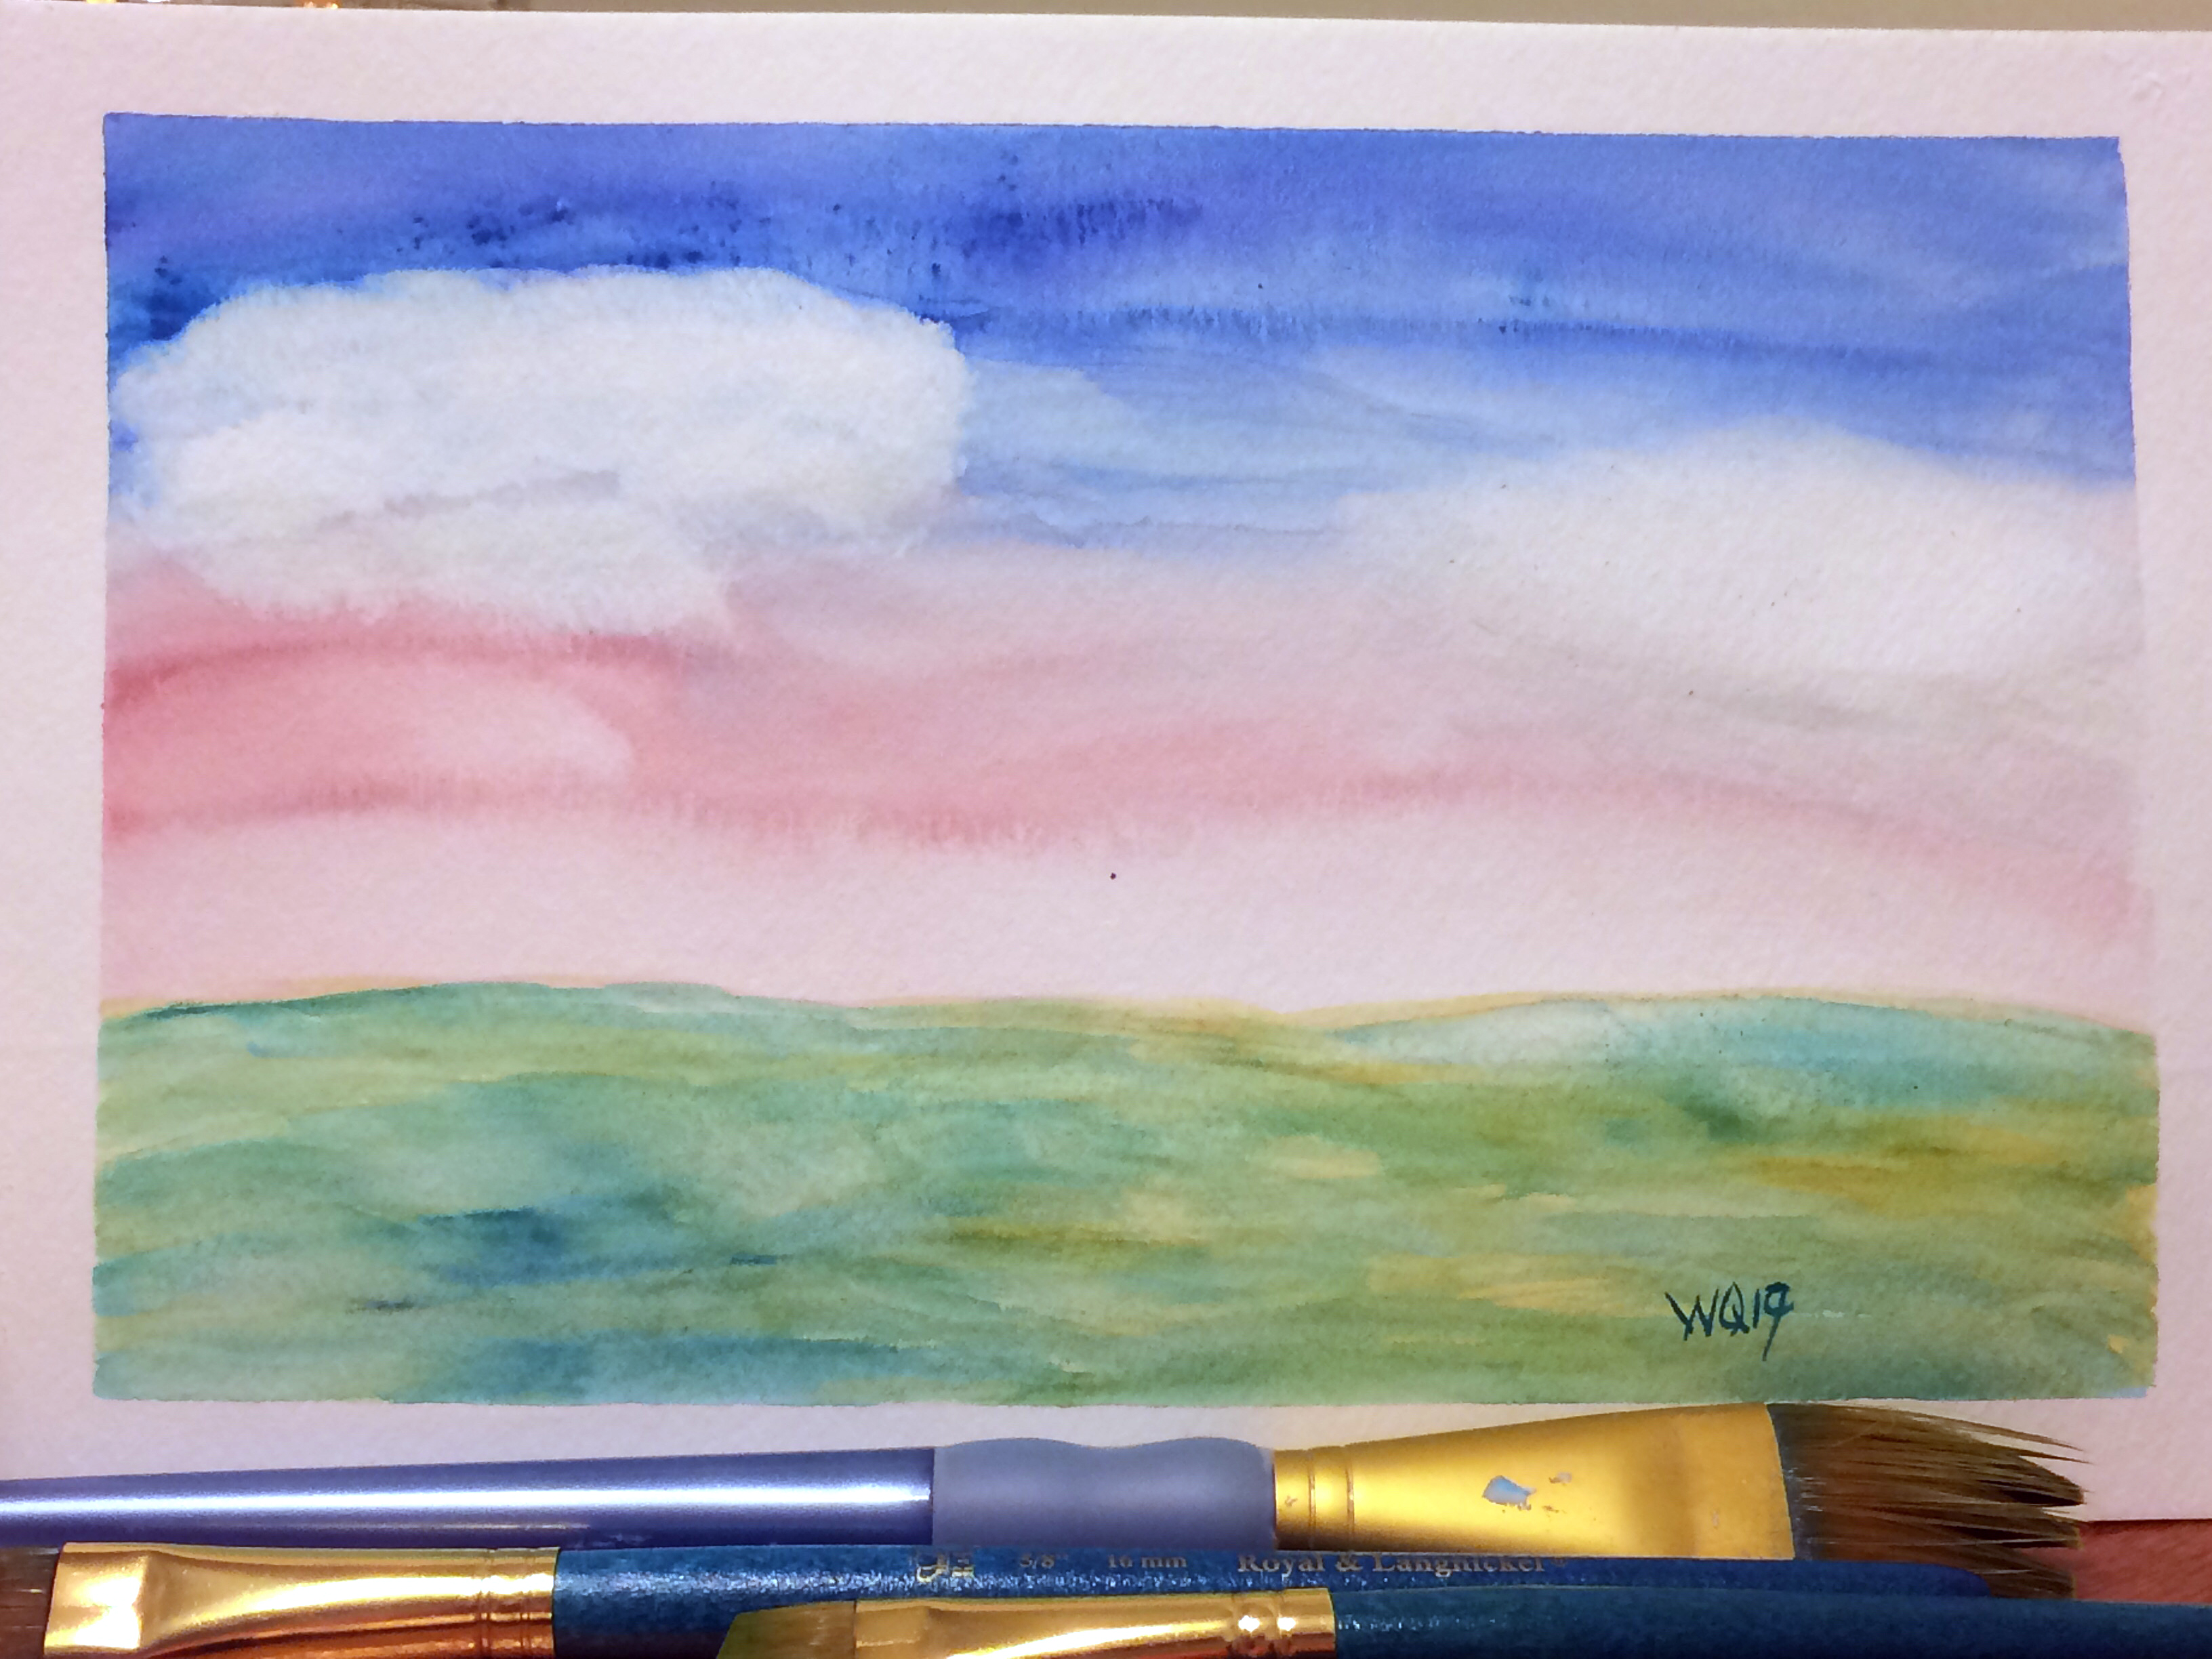 watercolour painting landscape of blue and pink sky with two large white clouds and green blue sea or grass.